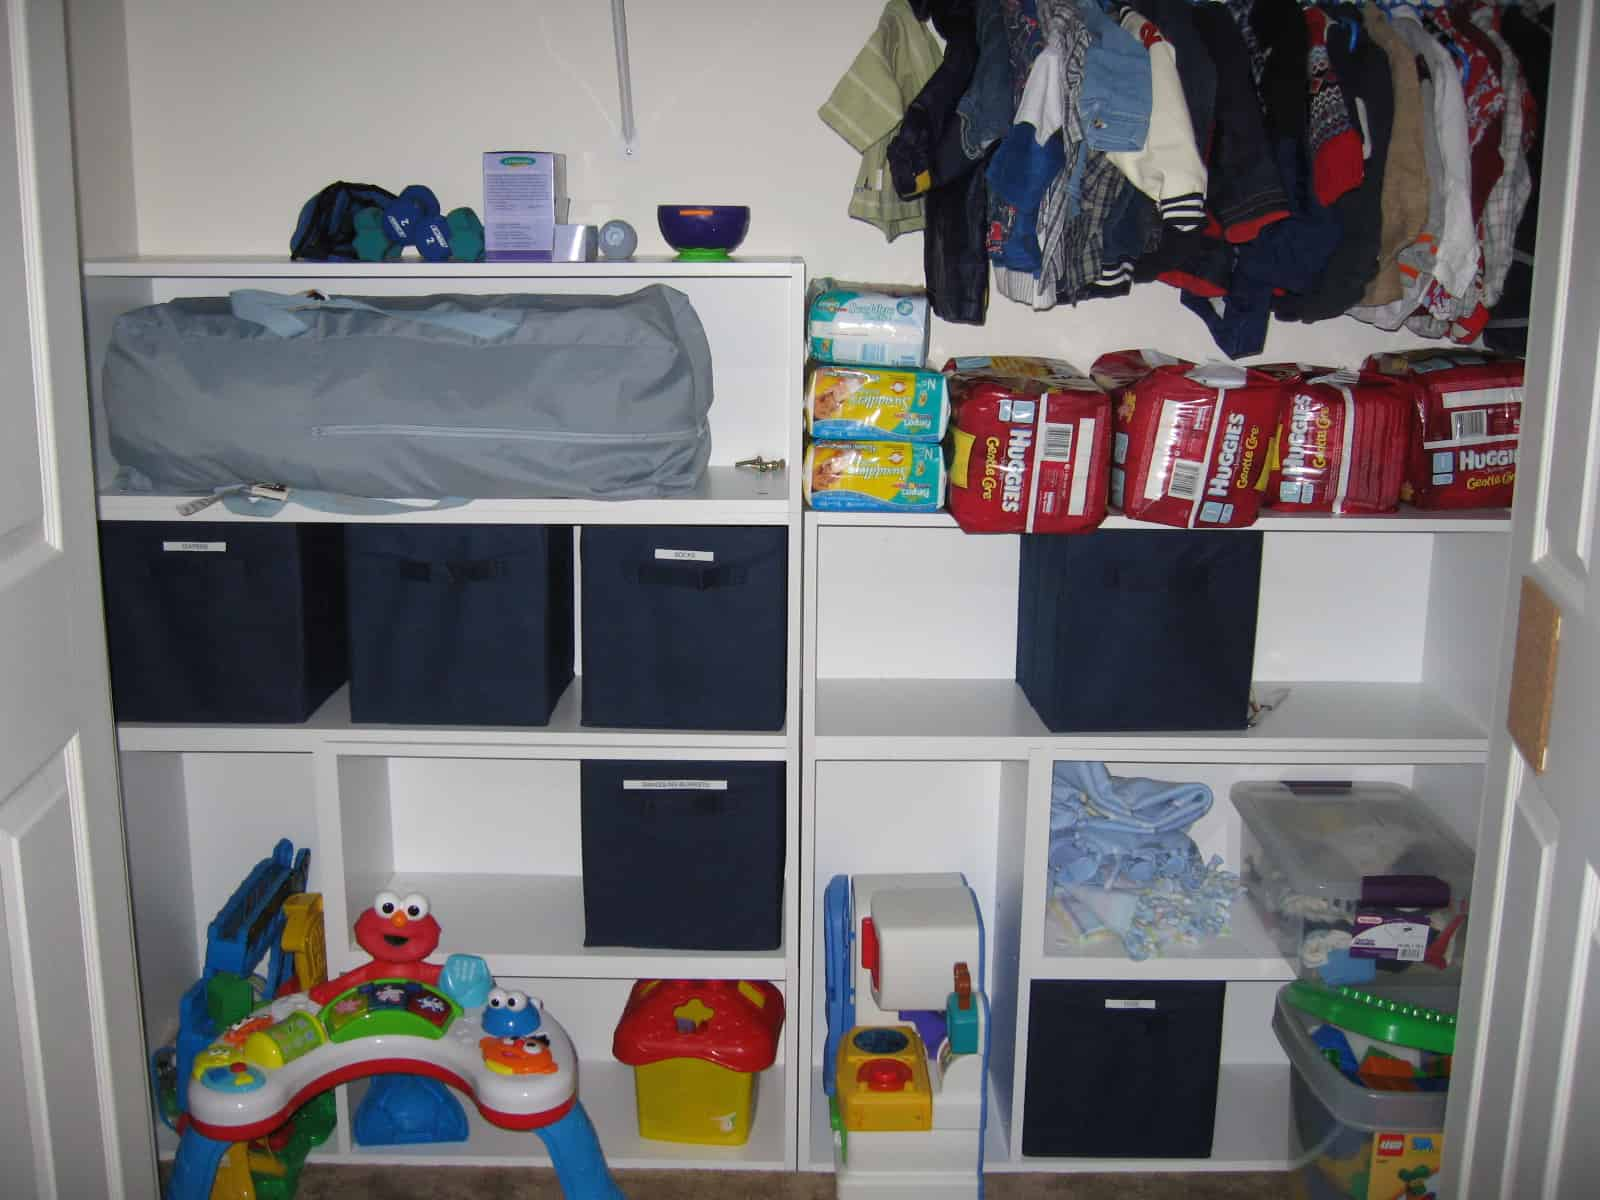 How To Organize Closet How To Organize Your Closet  The Organized Mom